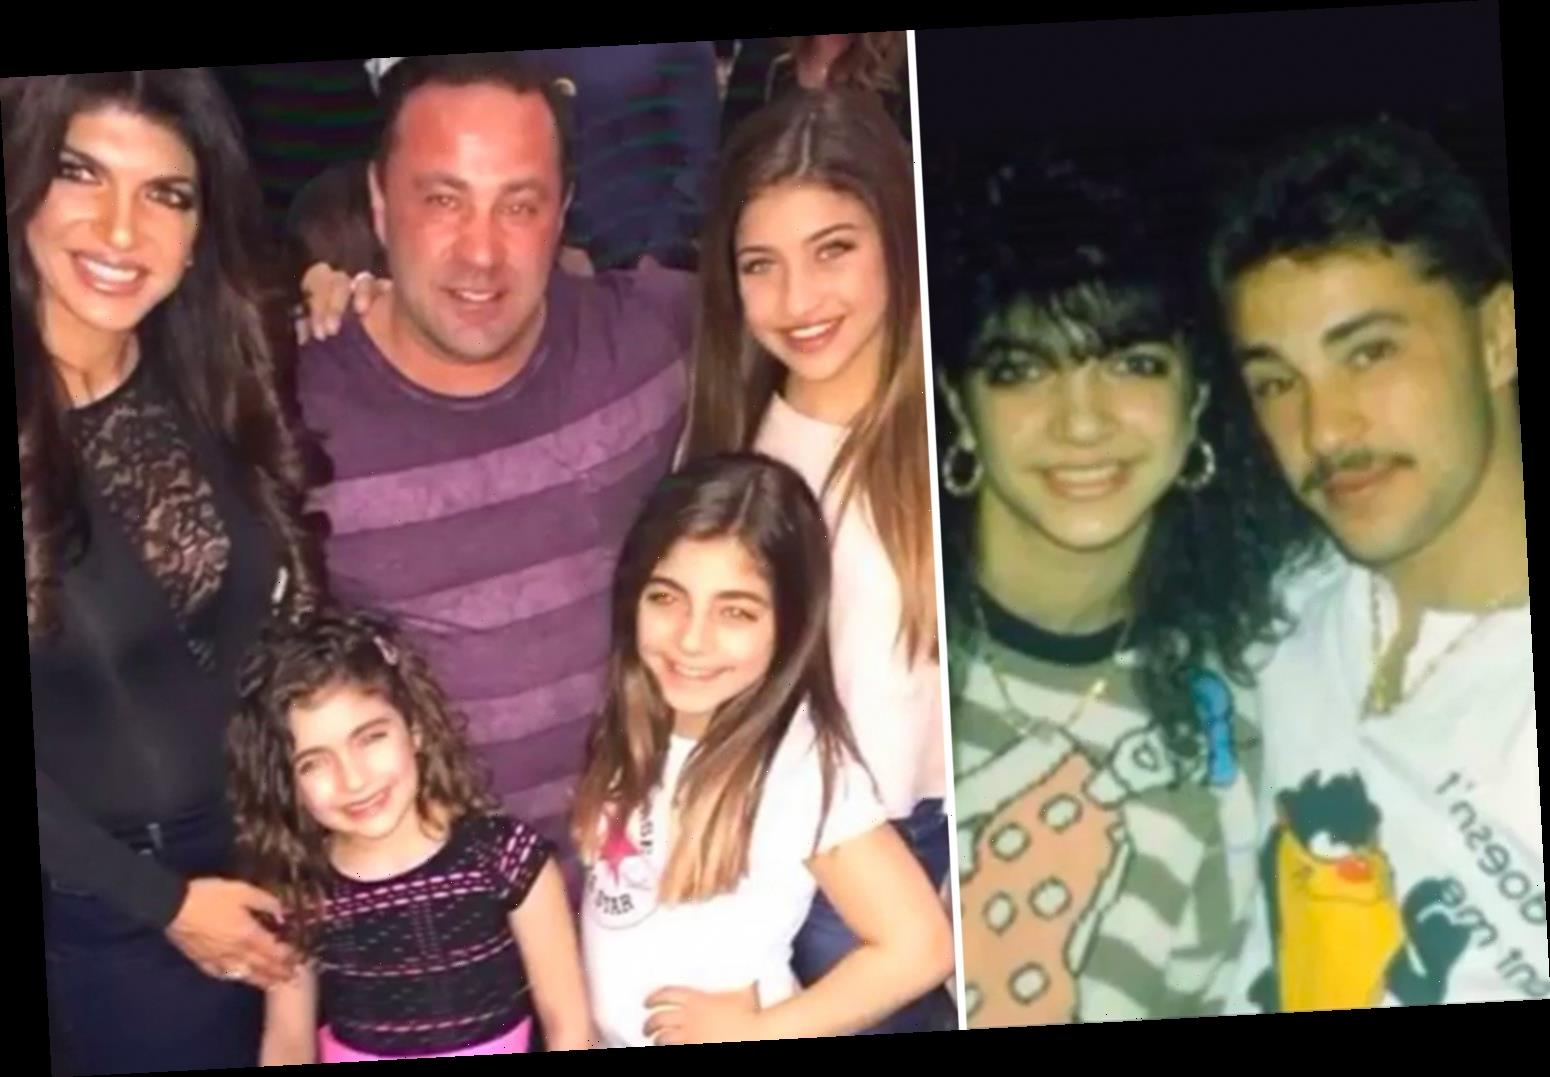 RHONJ's Joe Giudice says his family 'will always stay strong' amid deportation and divorce – The Sun